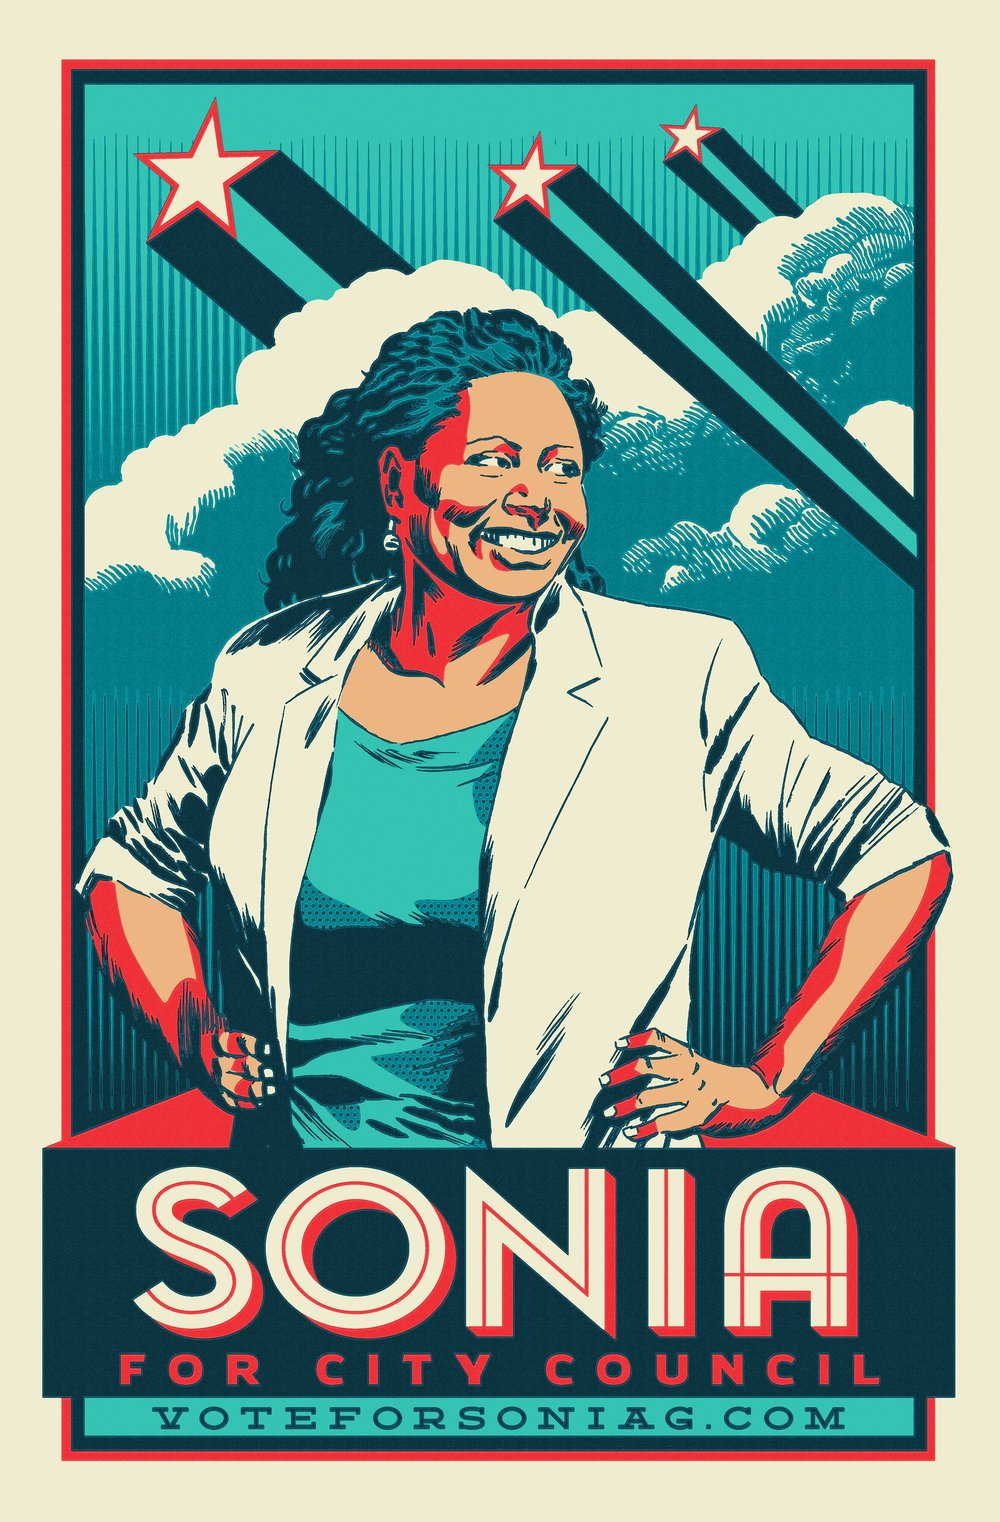 SONIA-CITY-COUNCIL-BY-CHAD-MAUPIN.jpg